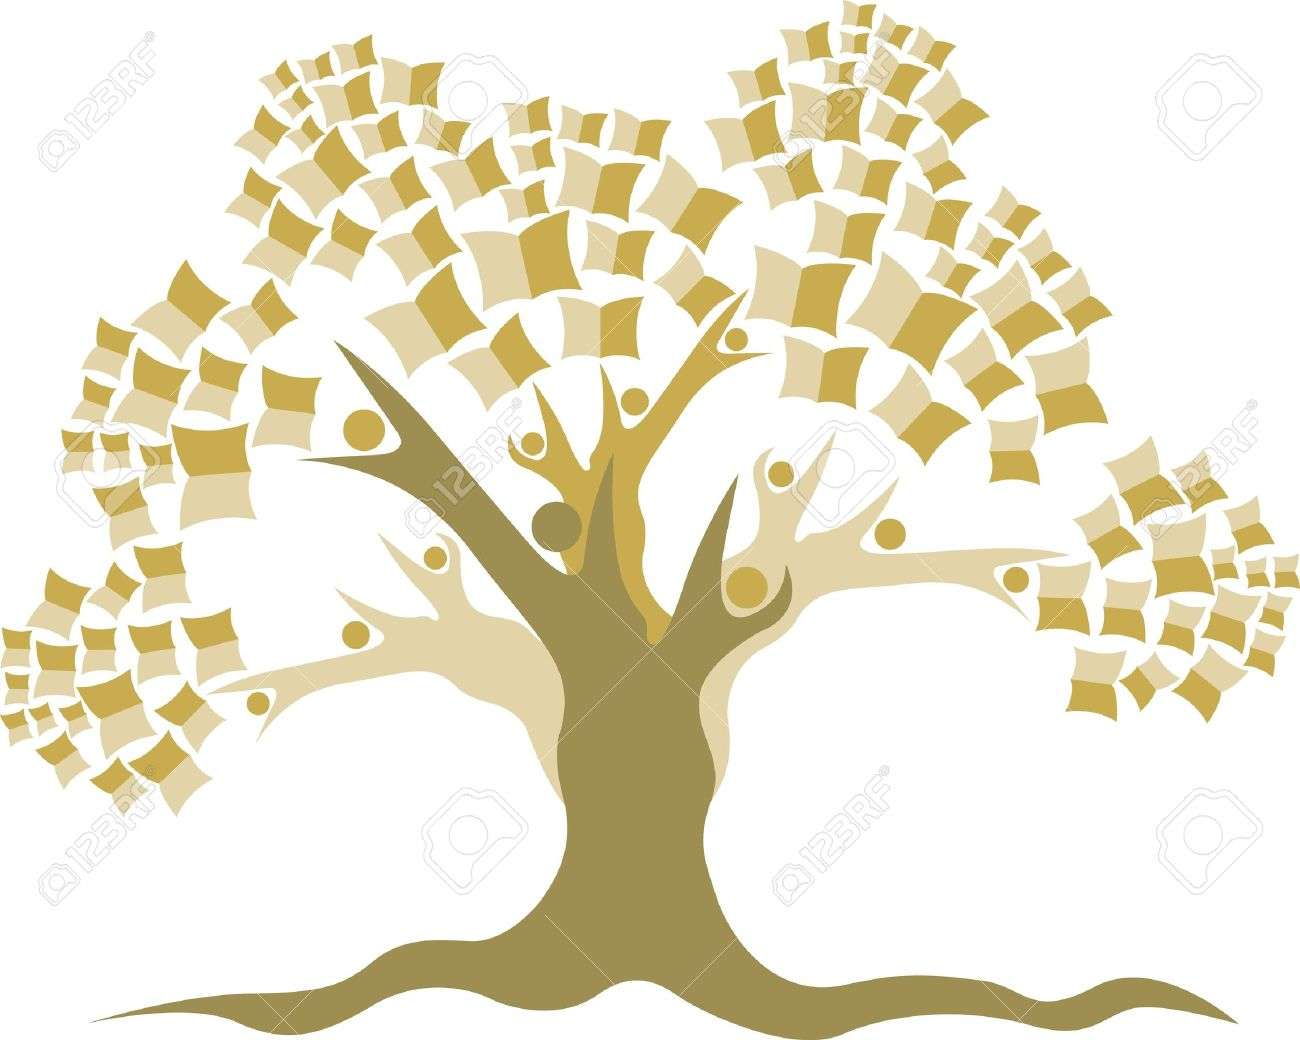 Illustration art of a Education tree logo with isolated background Stock Vector - 21302863